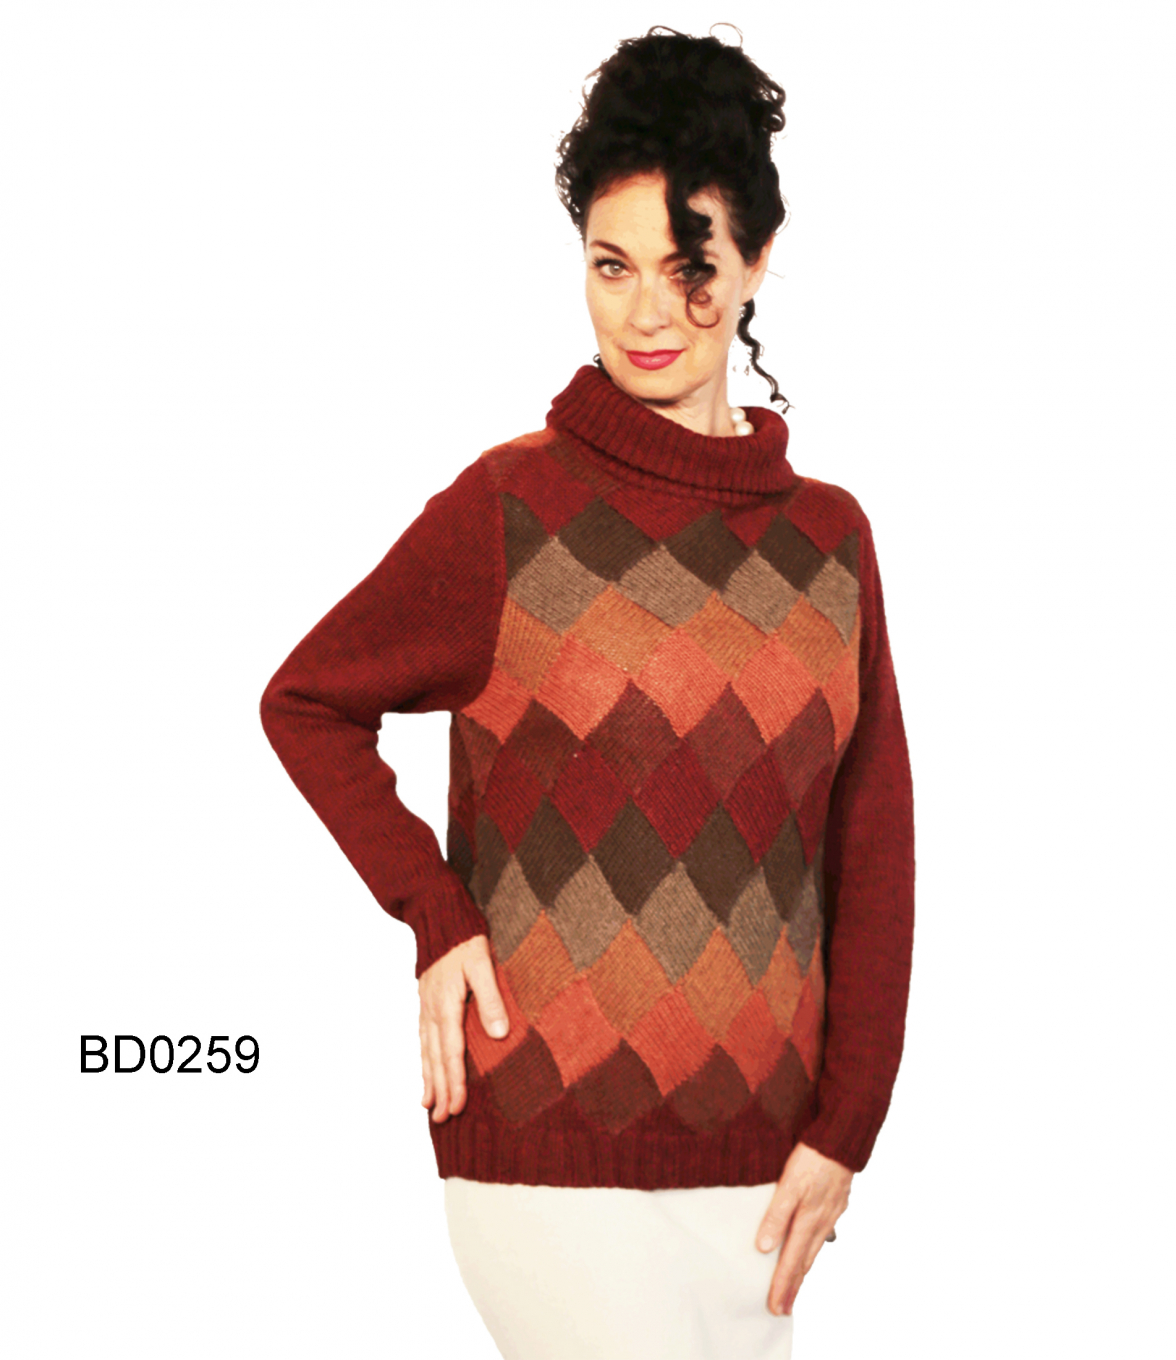 Alpaca Turtle-Neck Sweater with Checkerboard Pattern Chess